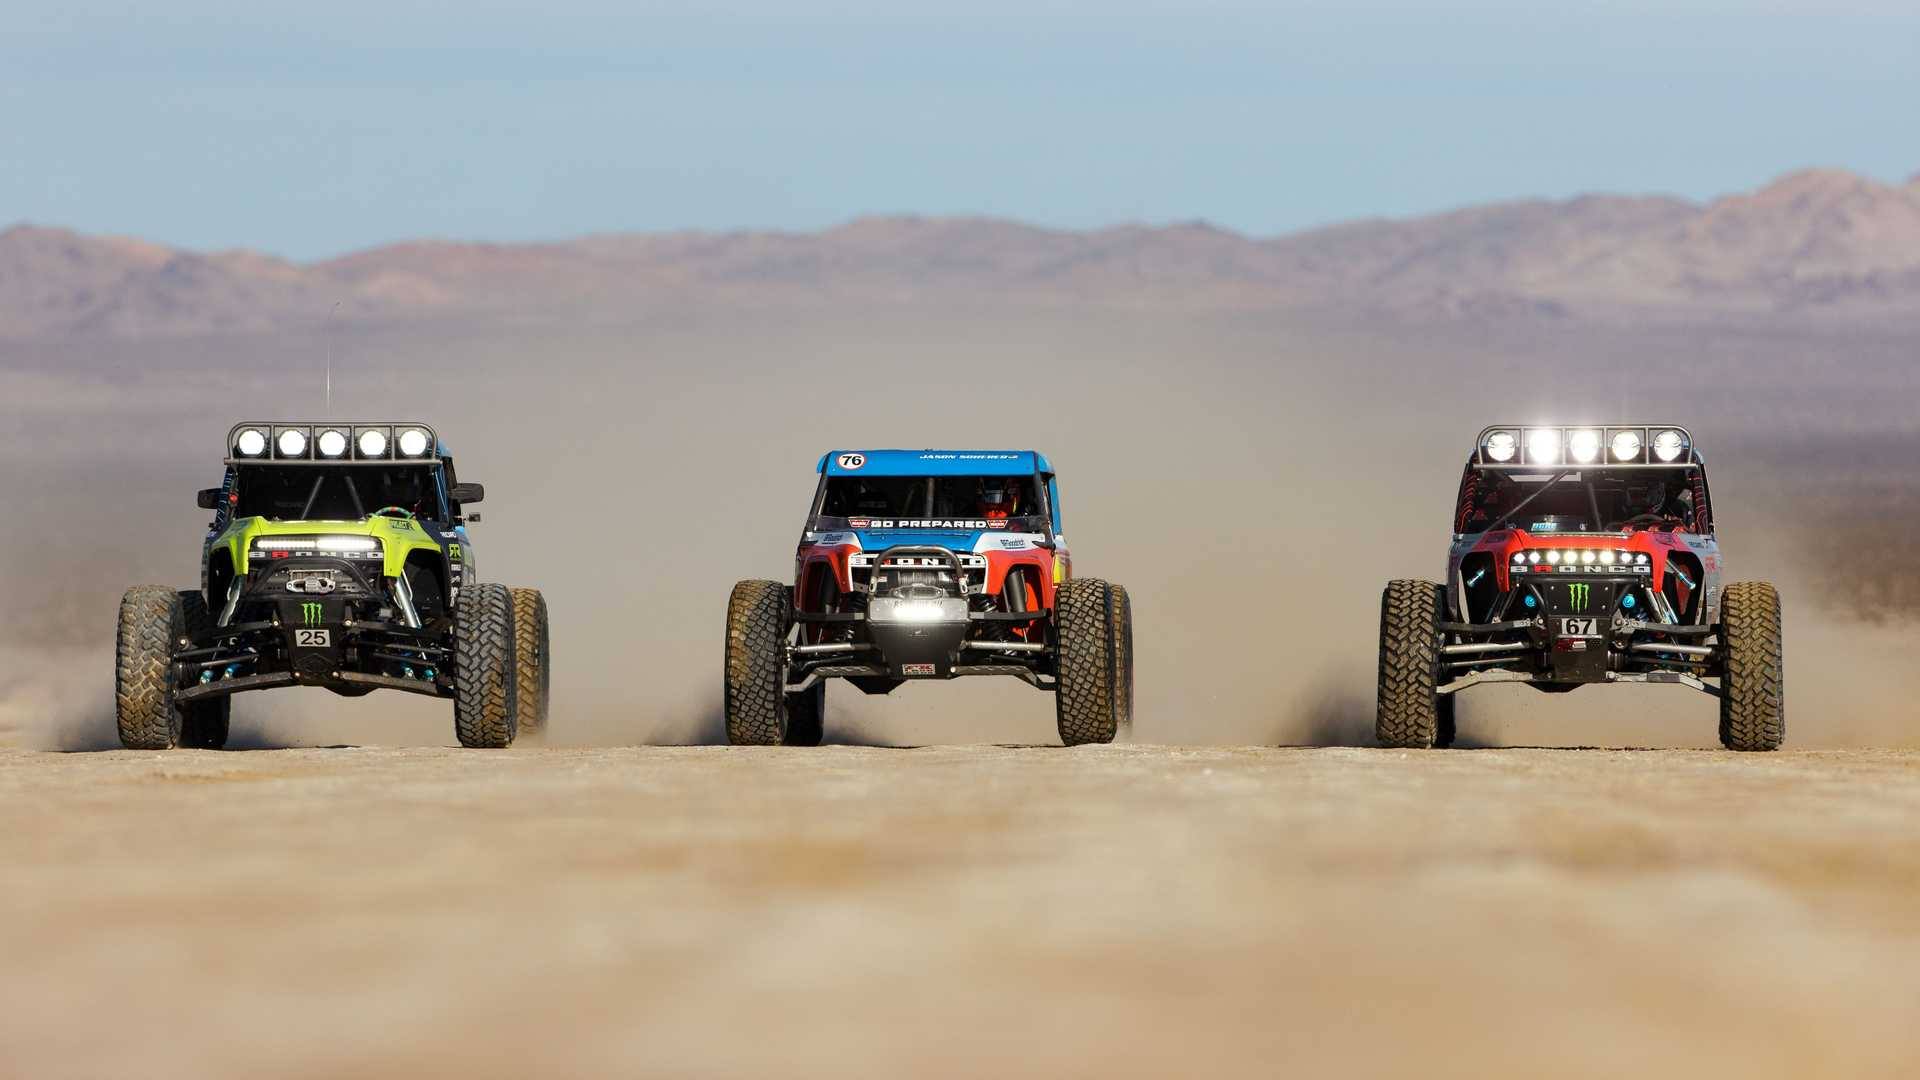 https://cdn.motor1.com/images/mgl/LQO7j/s6/ford-bronco-ultra4-4400-unlimited-class-race-truck-together.jpg